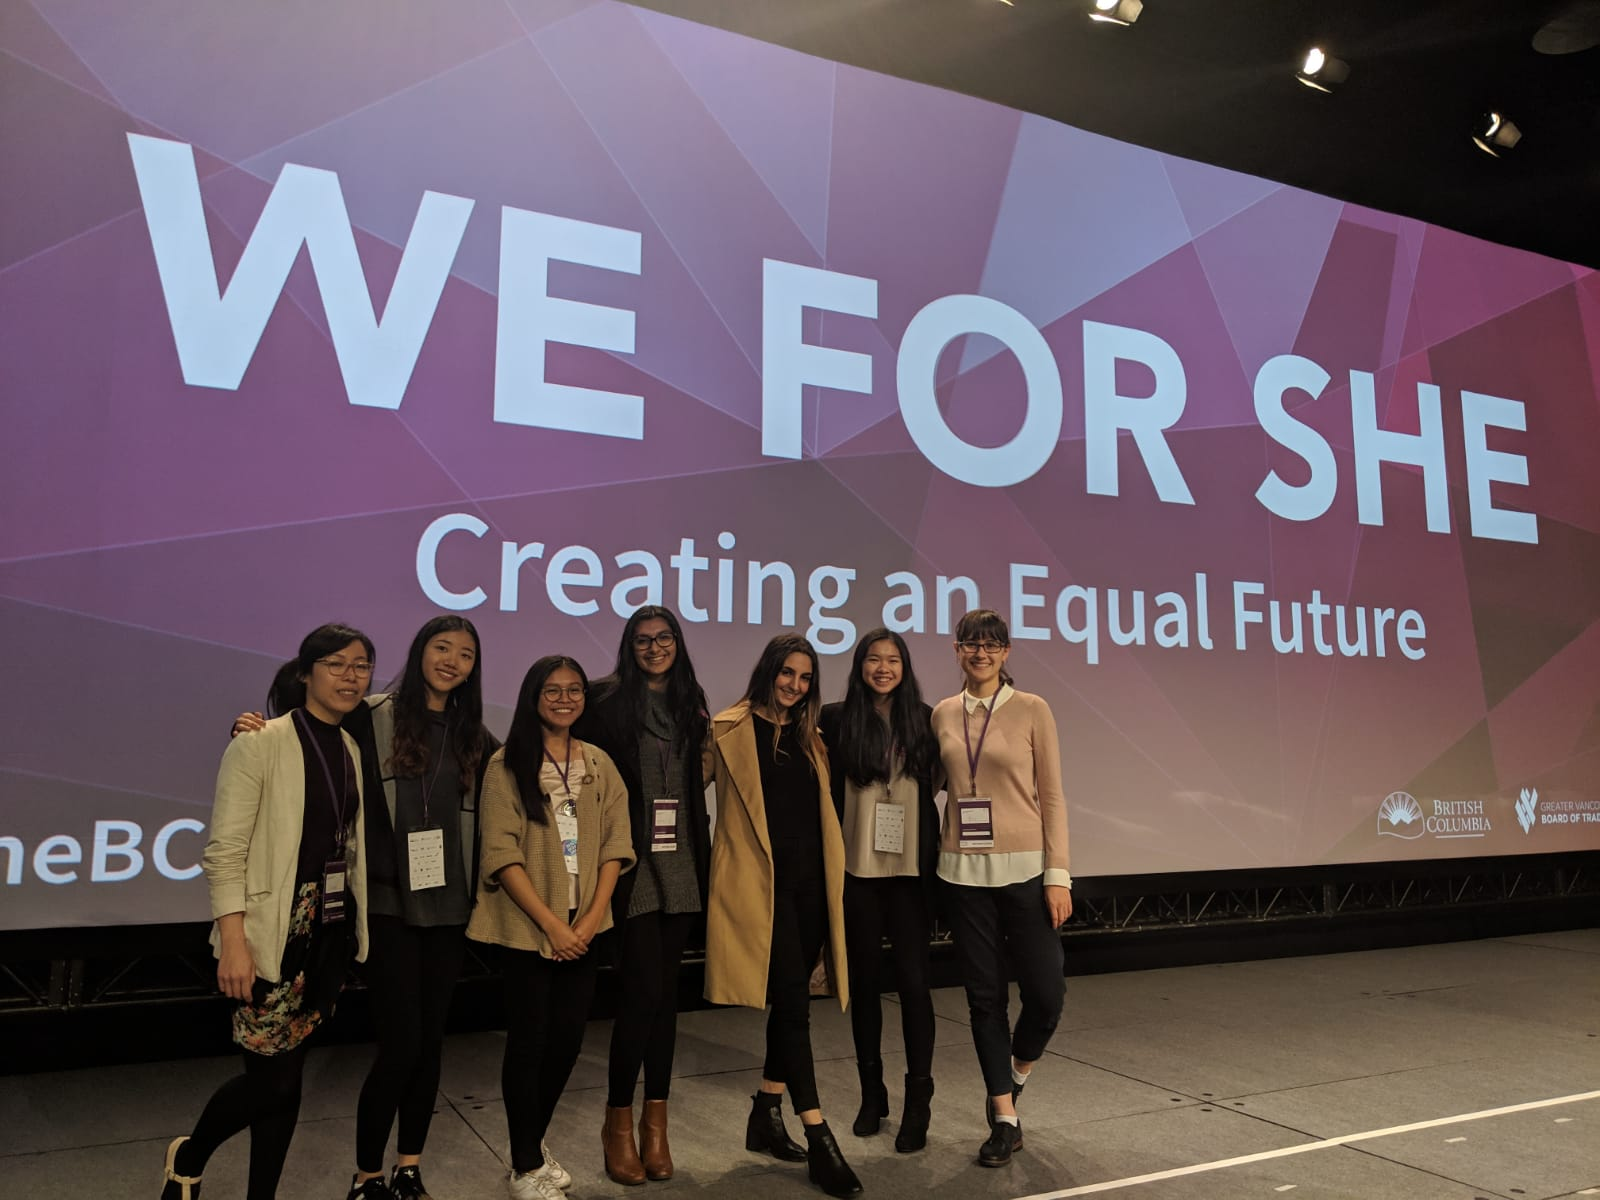 @WeForShe - Our YELL students definitely enjoyed the conference!